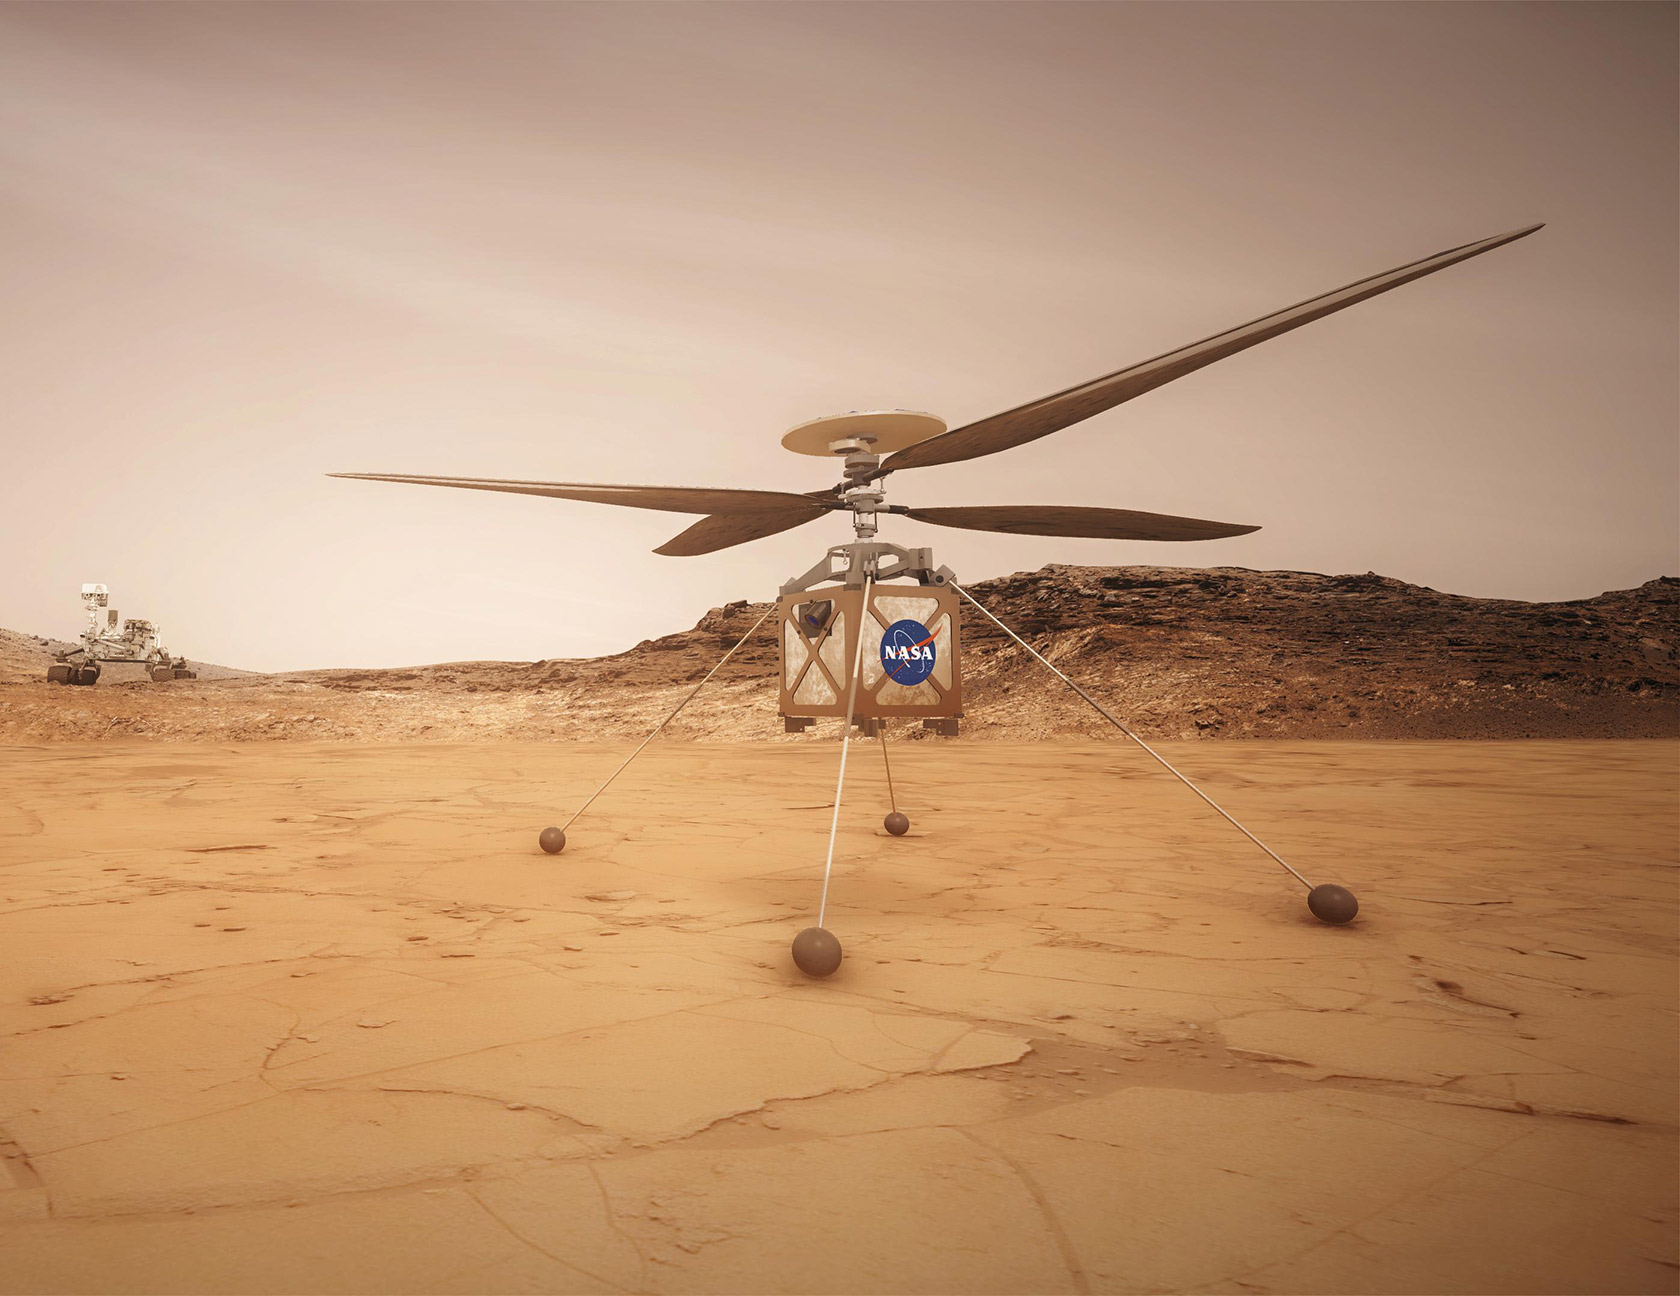 NASA Mars Helicopter Scientist